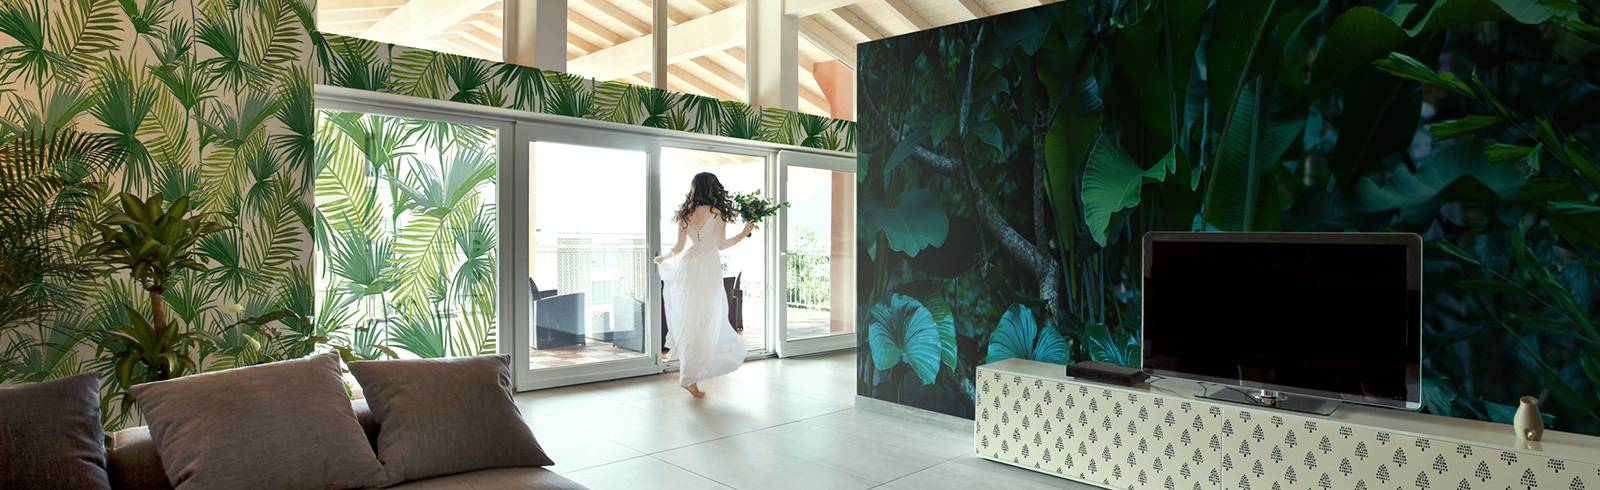 Wallpaper, Wall Mural & Stickers - Living Room in a Tropical Forest